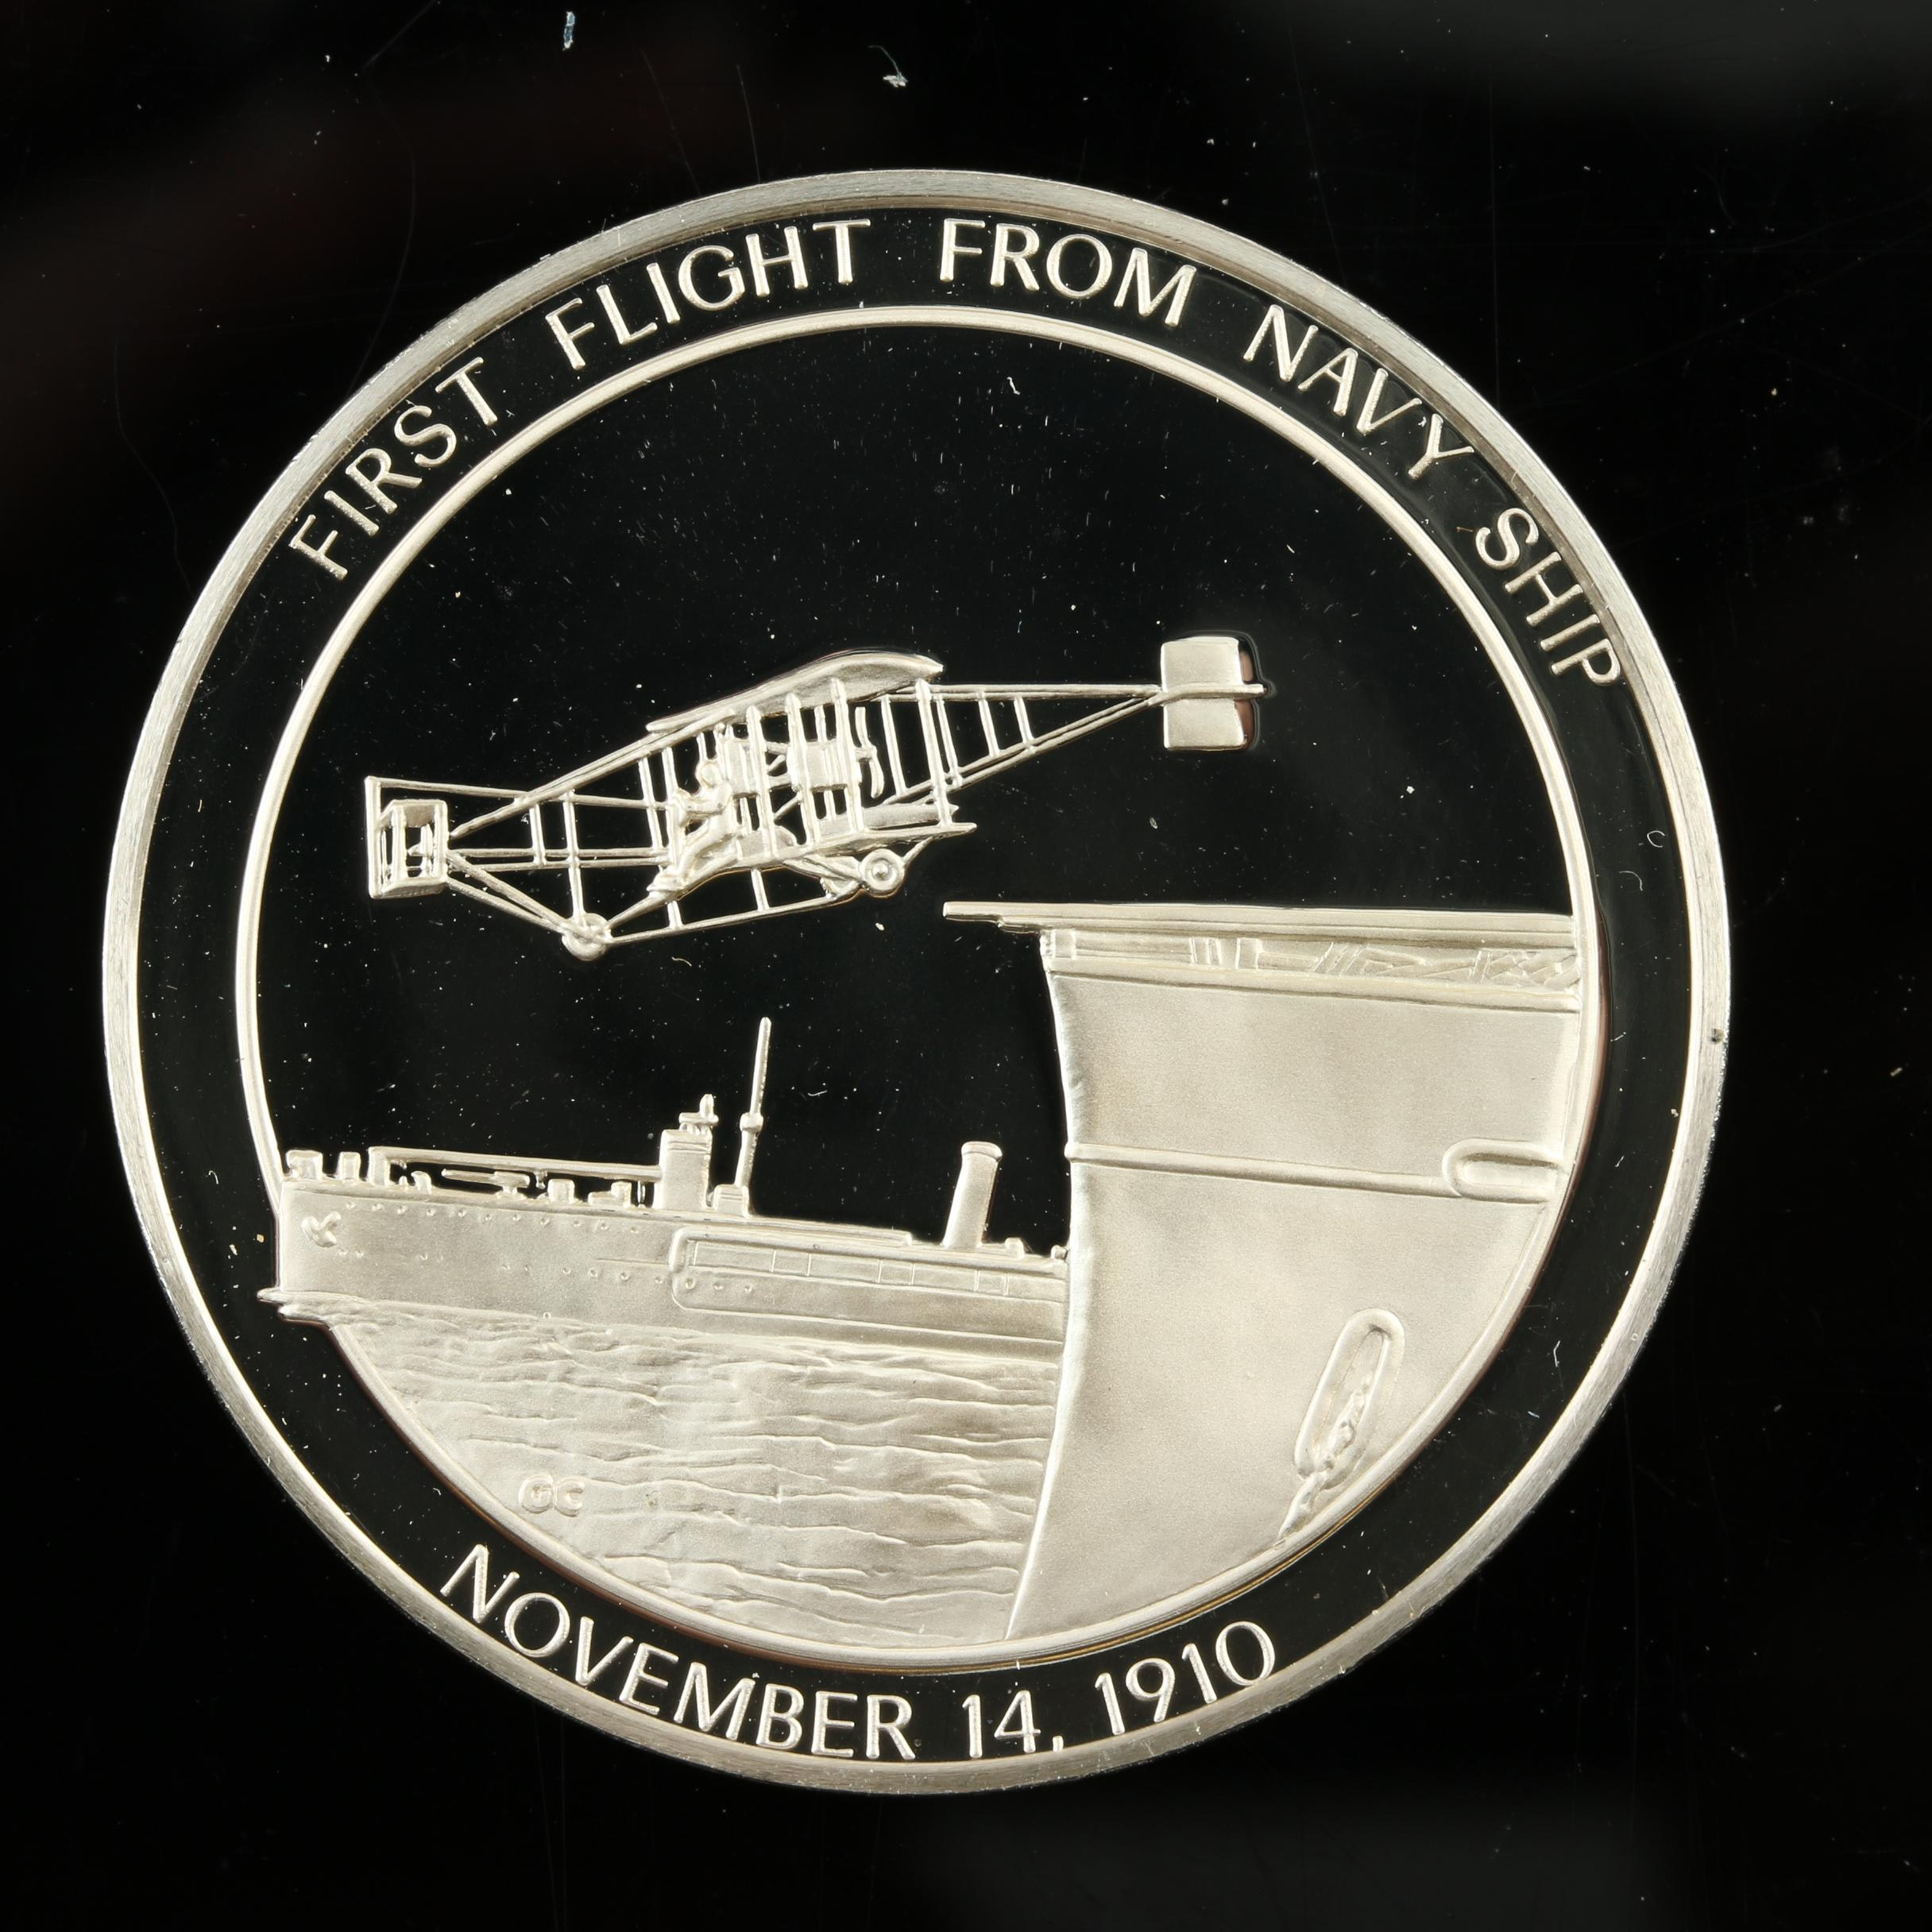 Sterling Silver Medal Commemorating First Flight from a Navy Ship in 1910